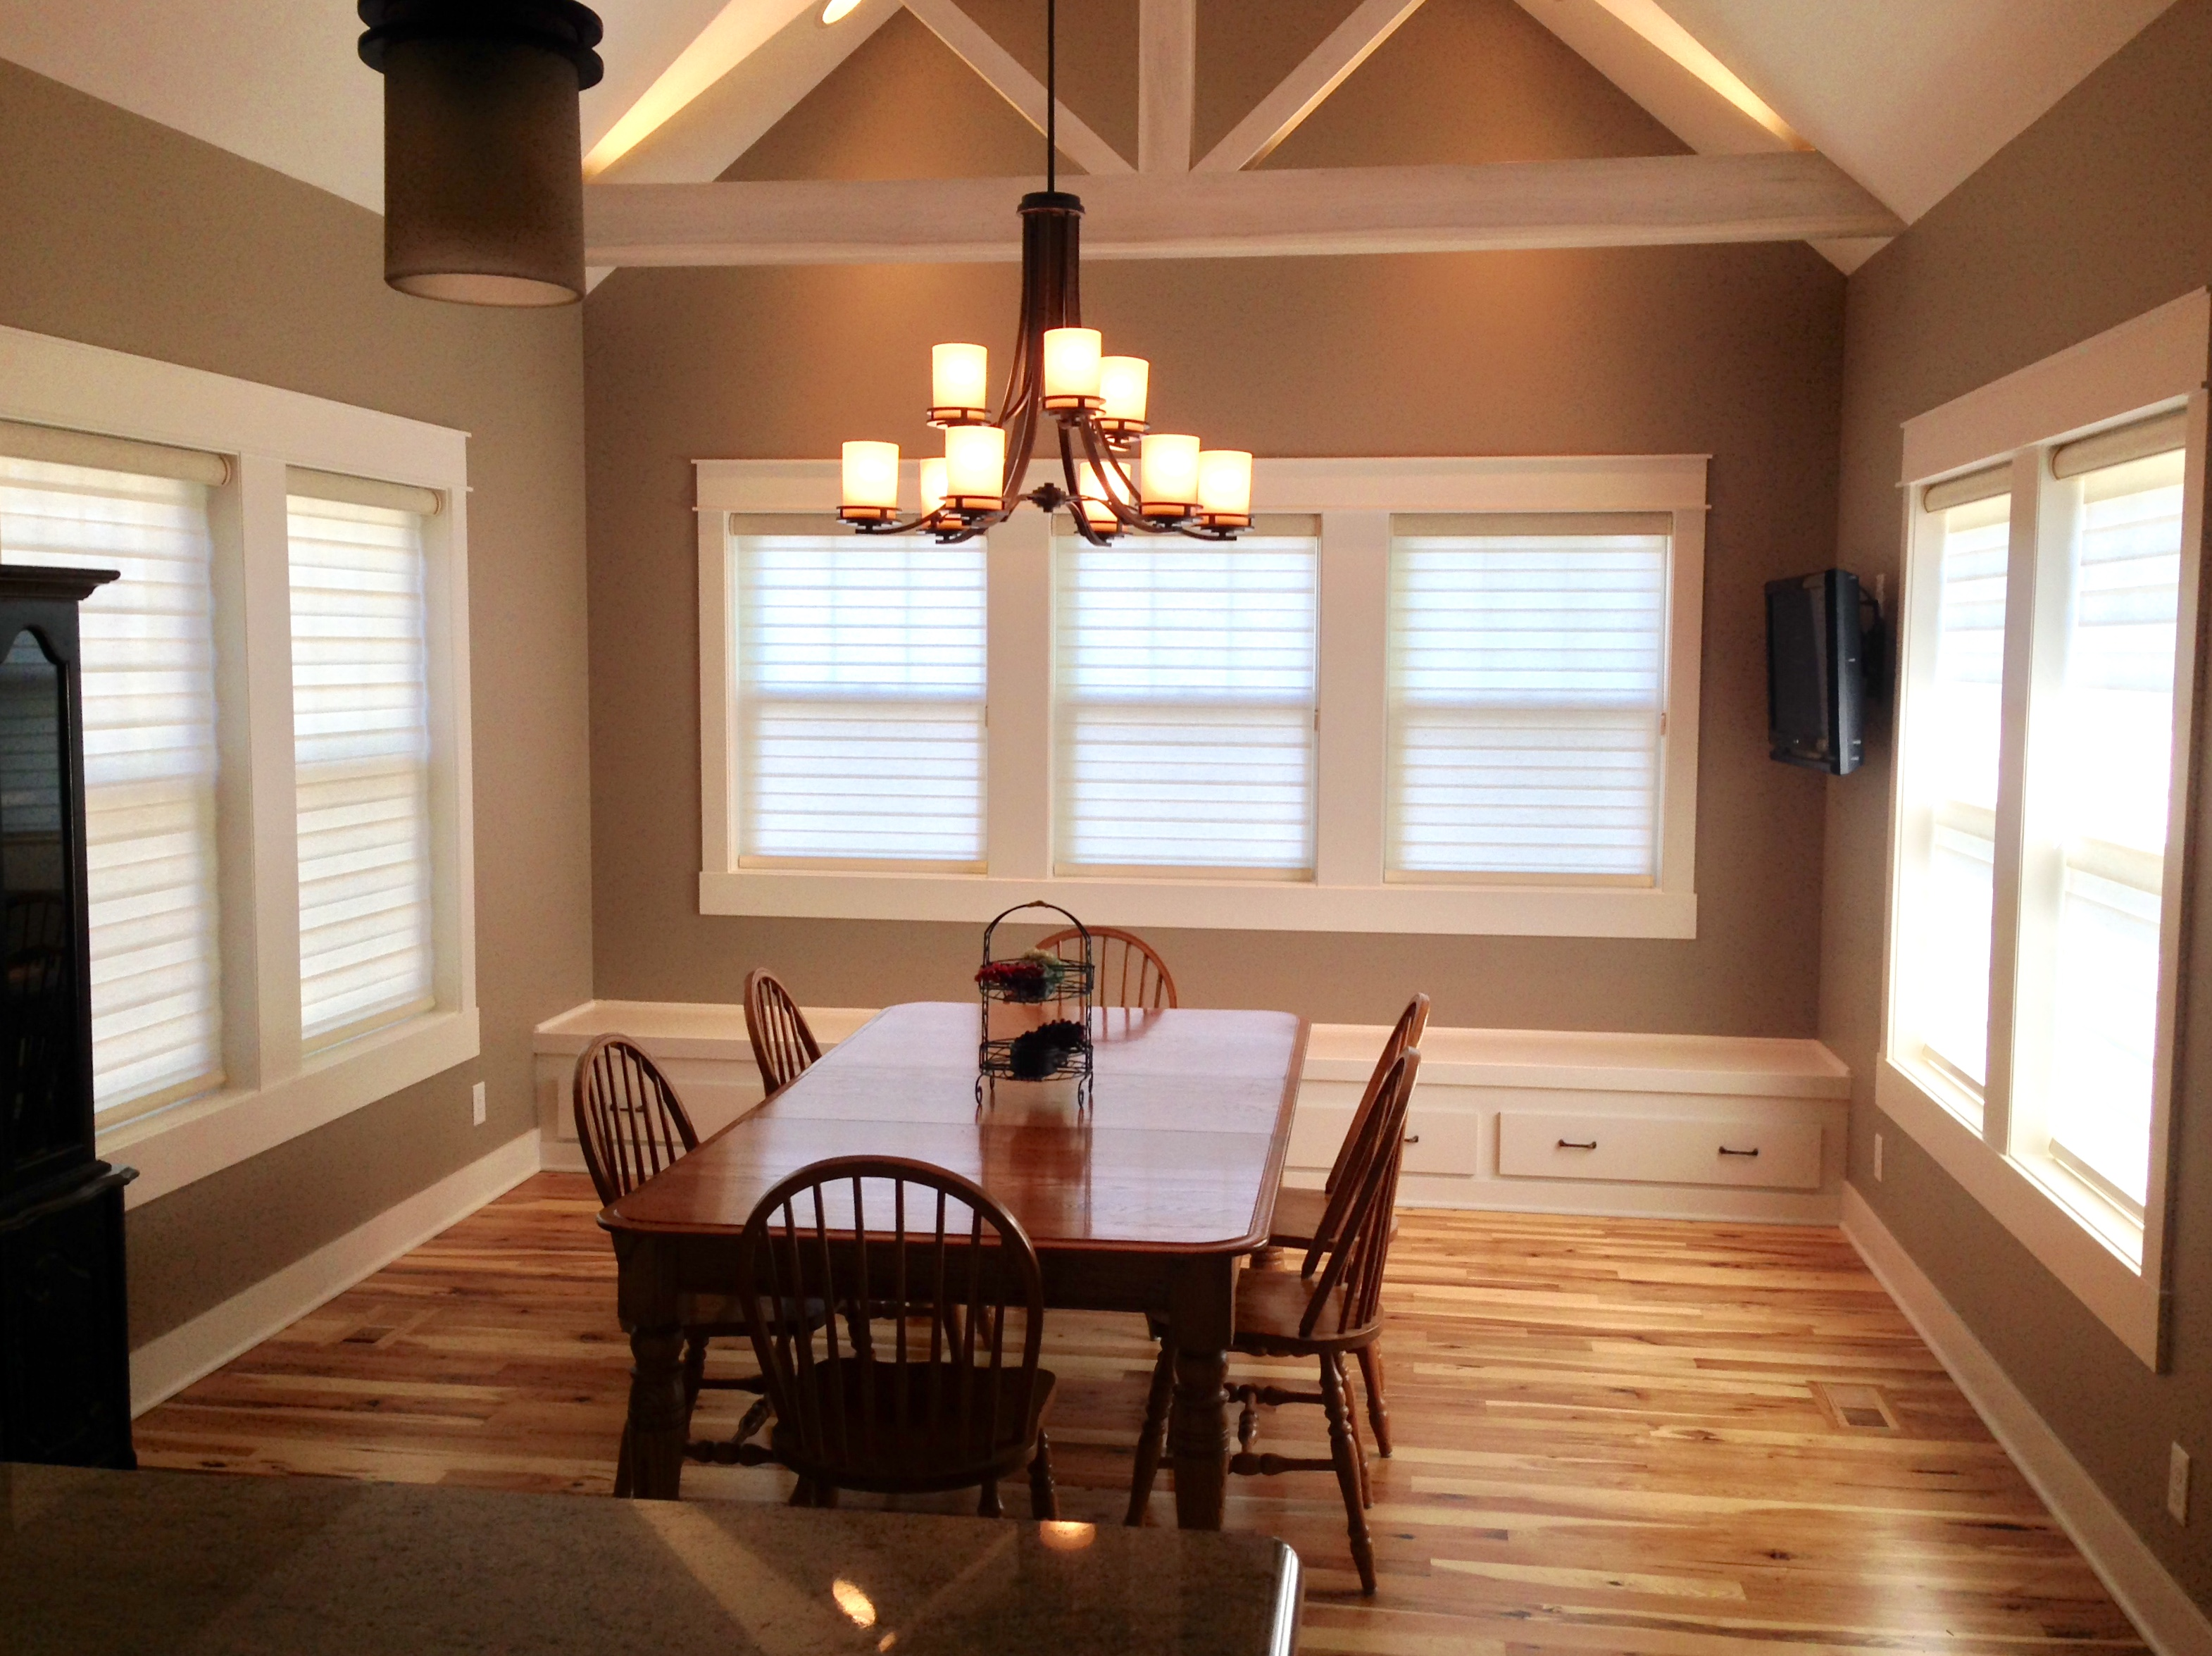 Allure Transitional Shadings